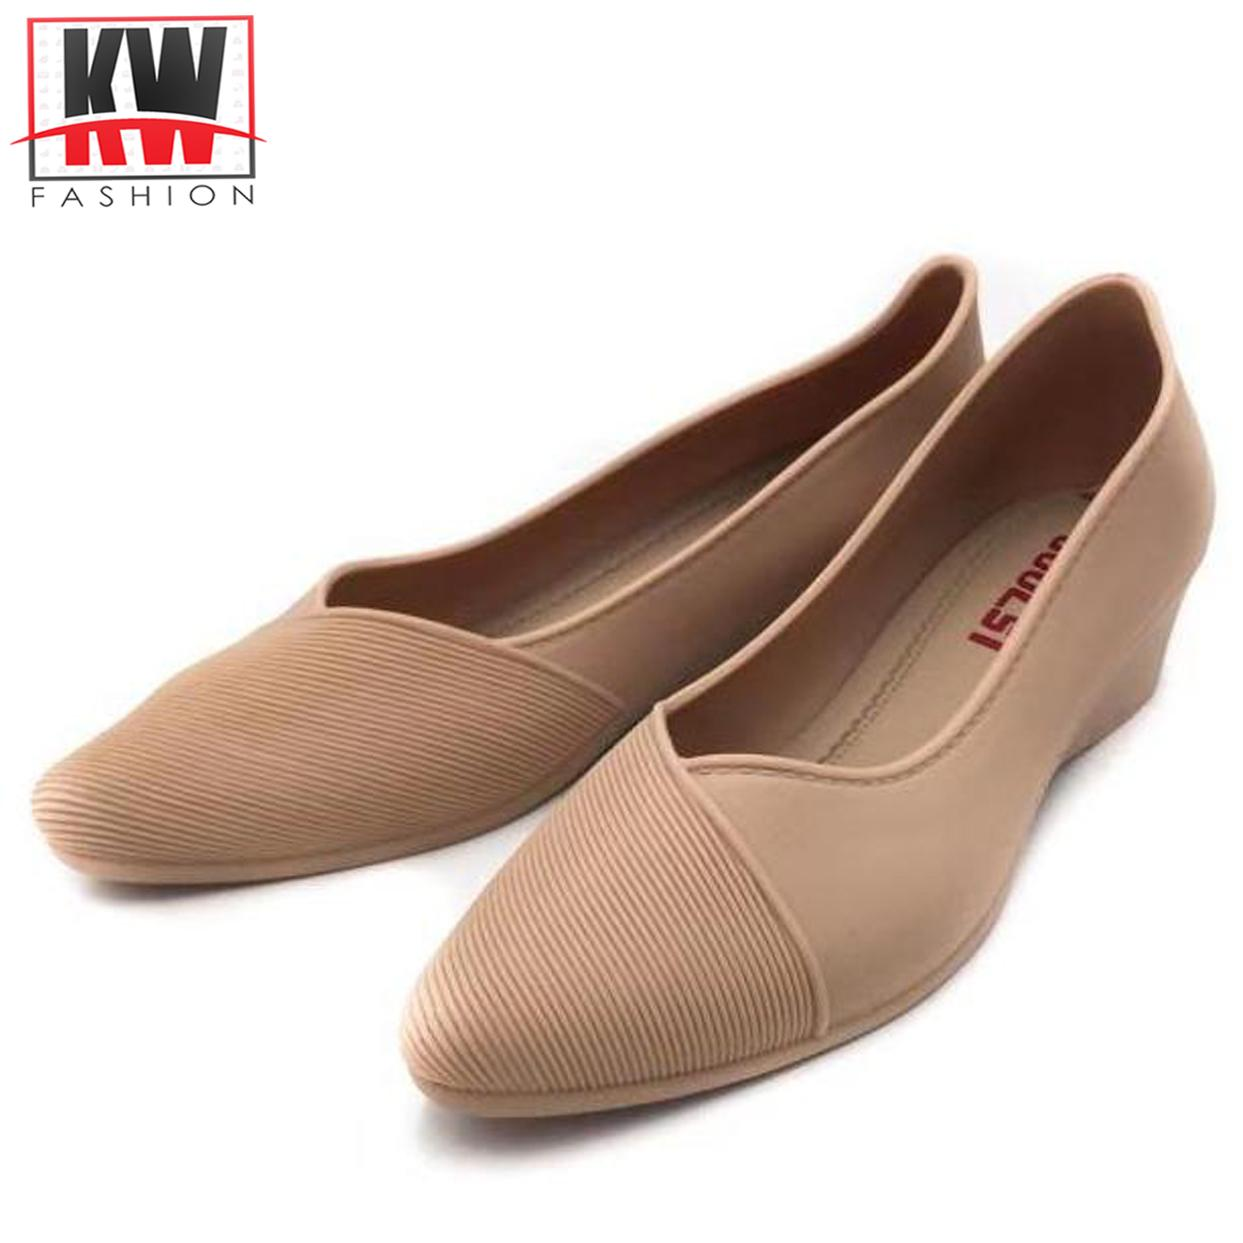 2c433ab0a33649 Flat Shoes for Women for sale - Womens Flats online brands